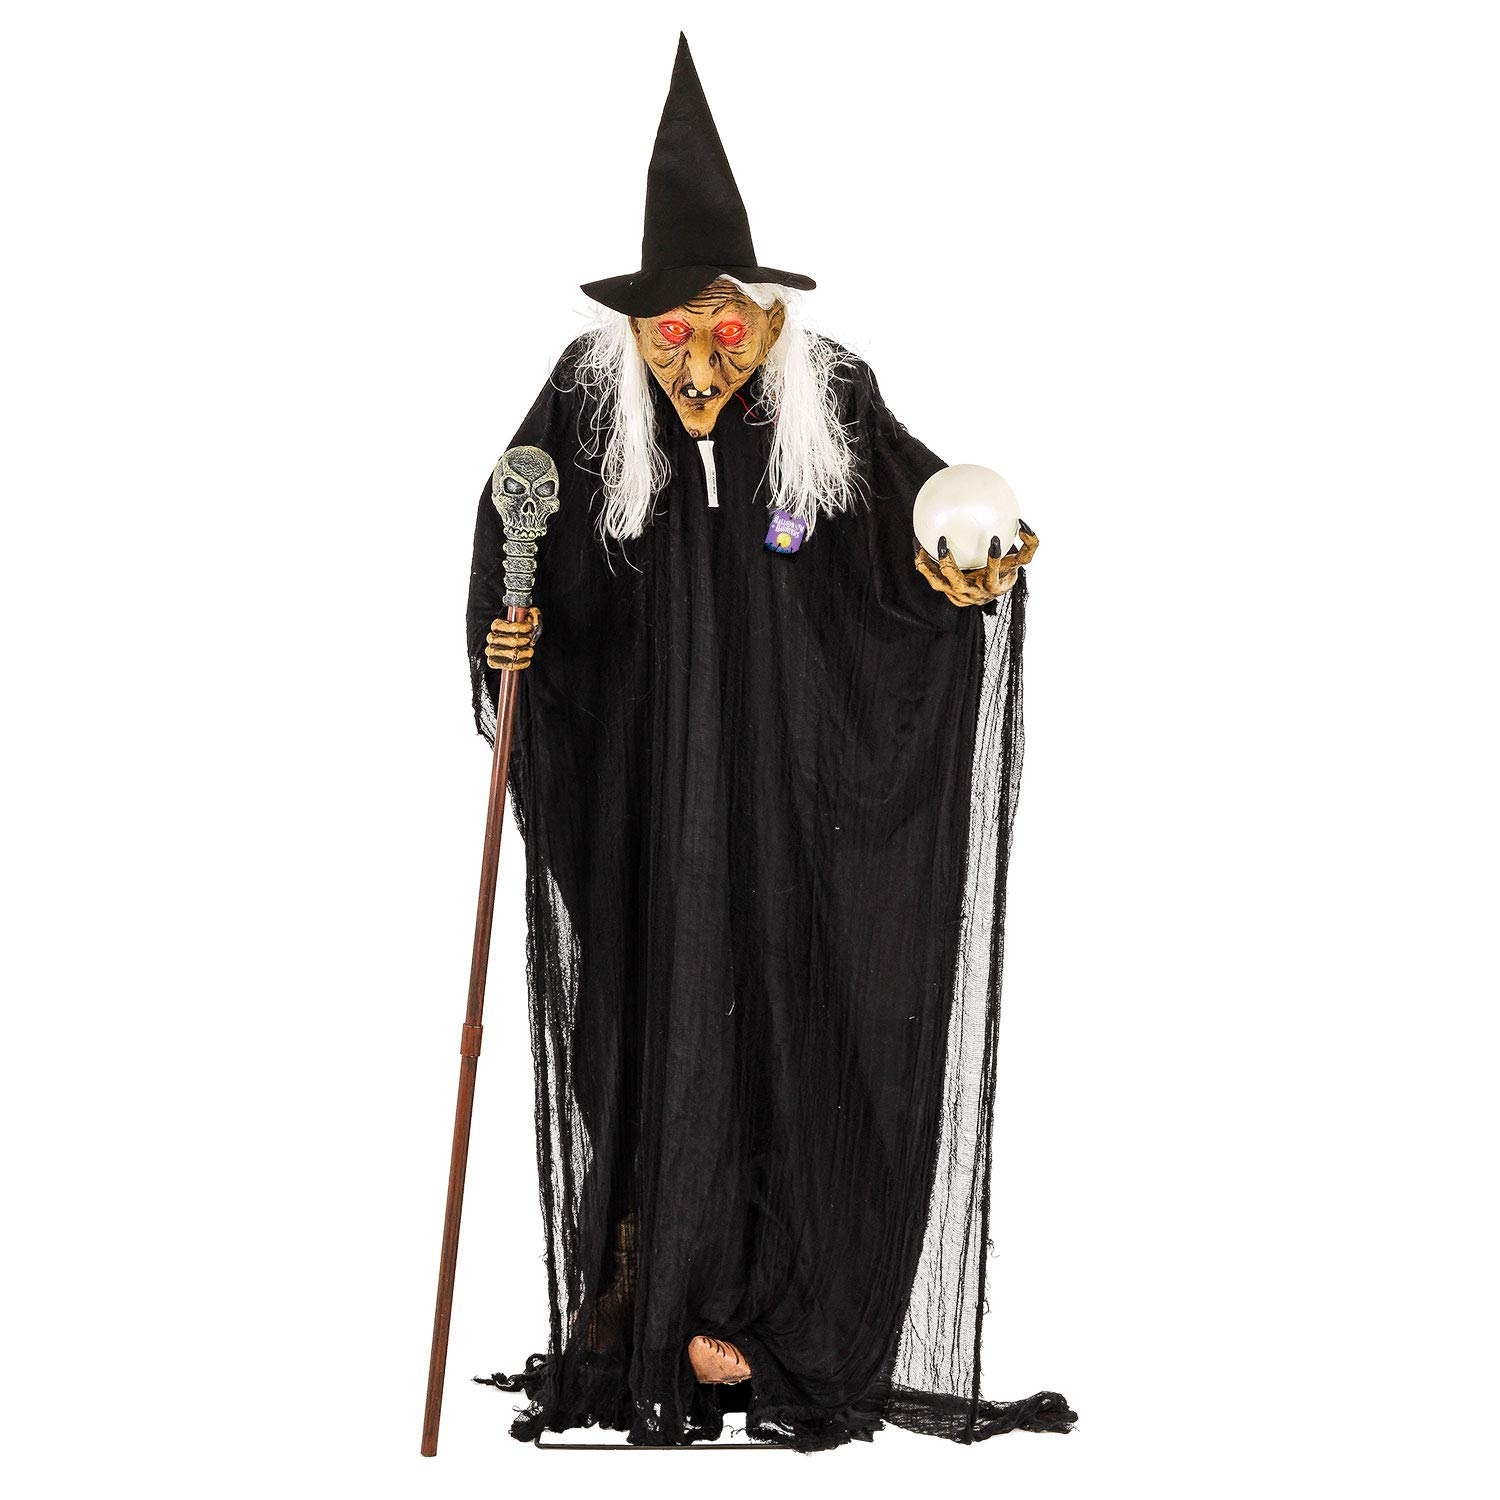 Halloween Haunters Life-Size Standing Old Witch with Crystal Ball and Skull Staff - Prop Decoration by Halloween Haunters